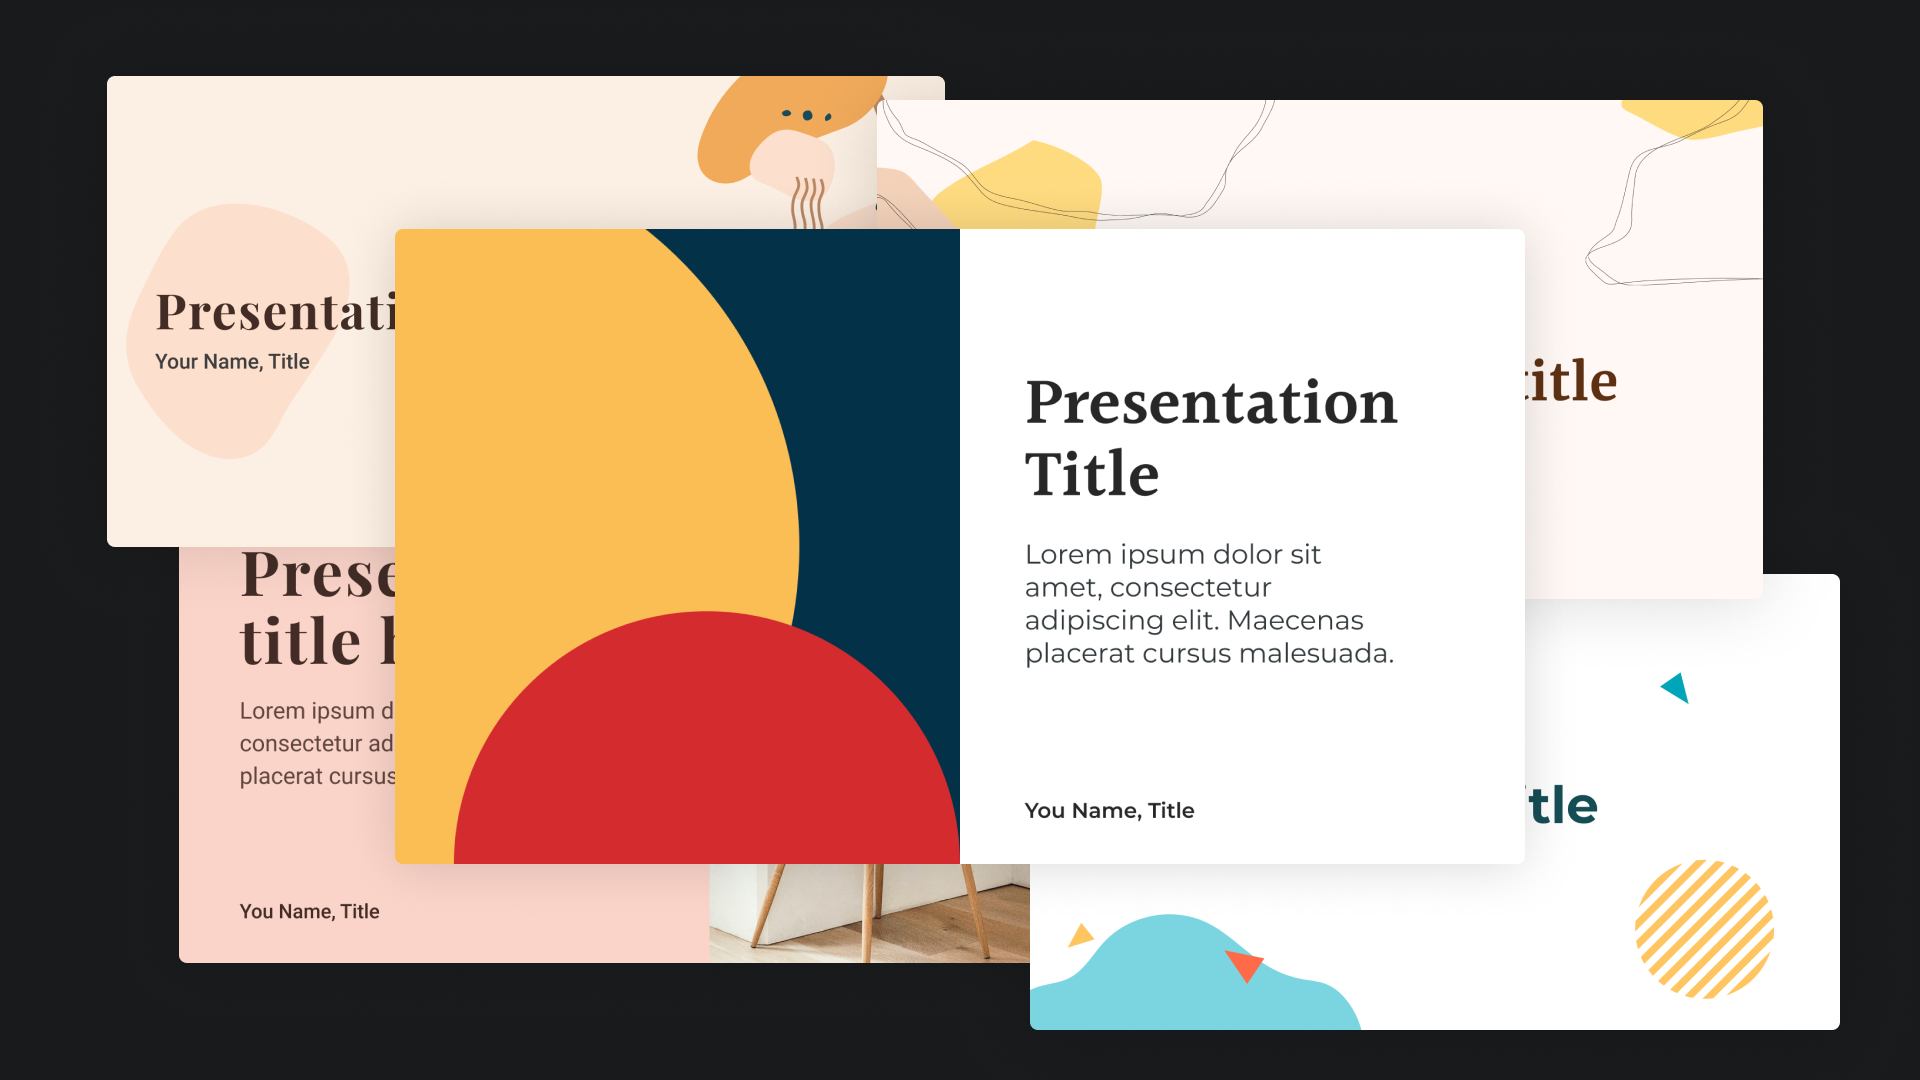 Collection of presentation preveiws from templatery.co